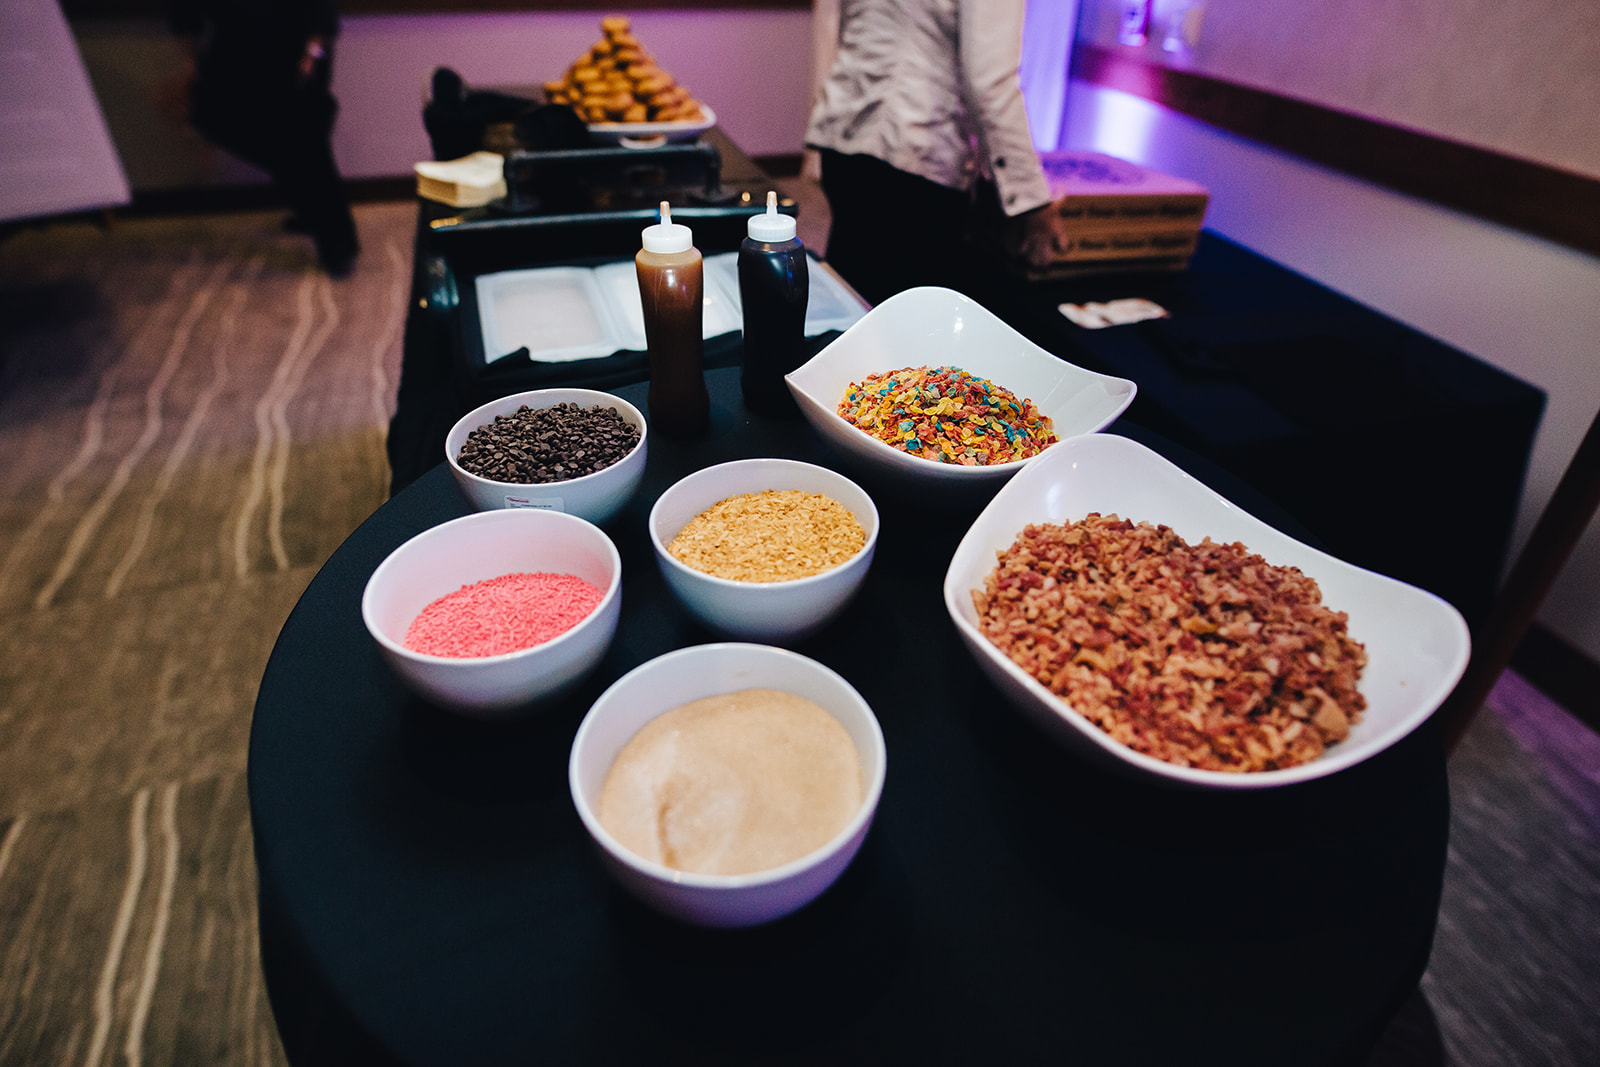 Donut toppings display for West Bay Beach wedding